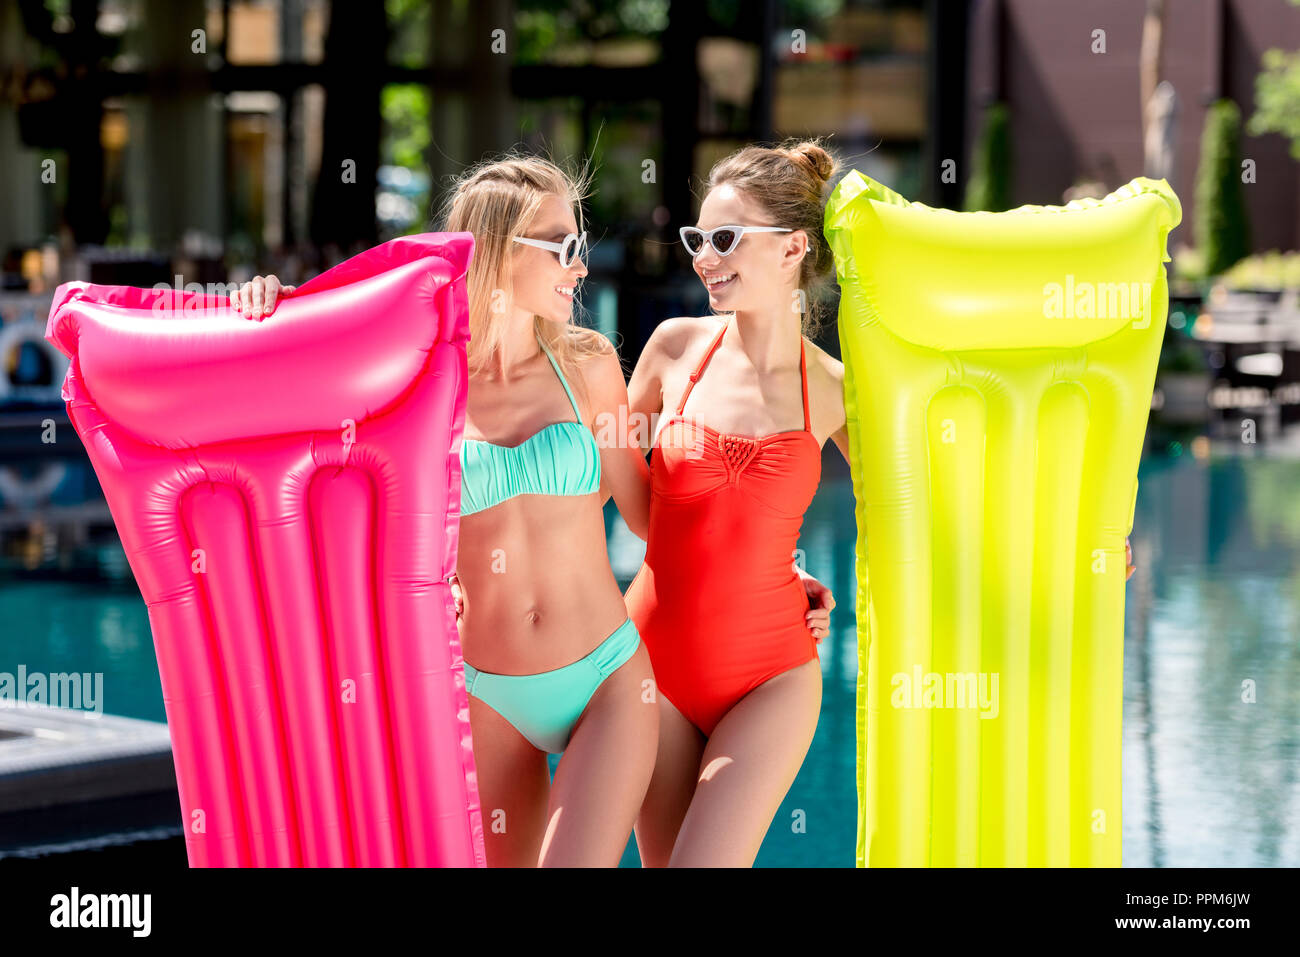 beautiful young women with inflatable mattresses standing at poolside and looking at each other - Stock Image